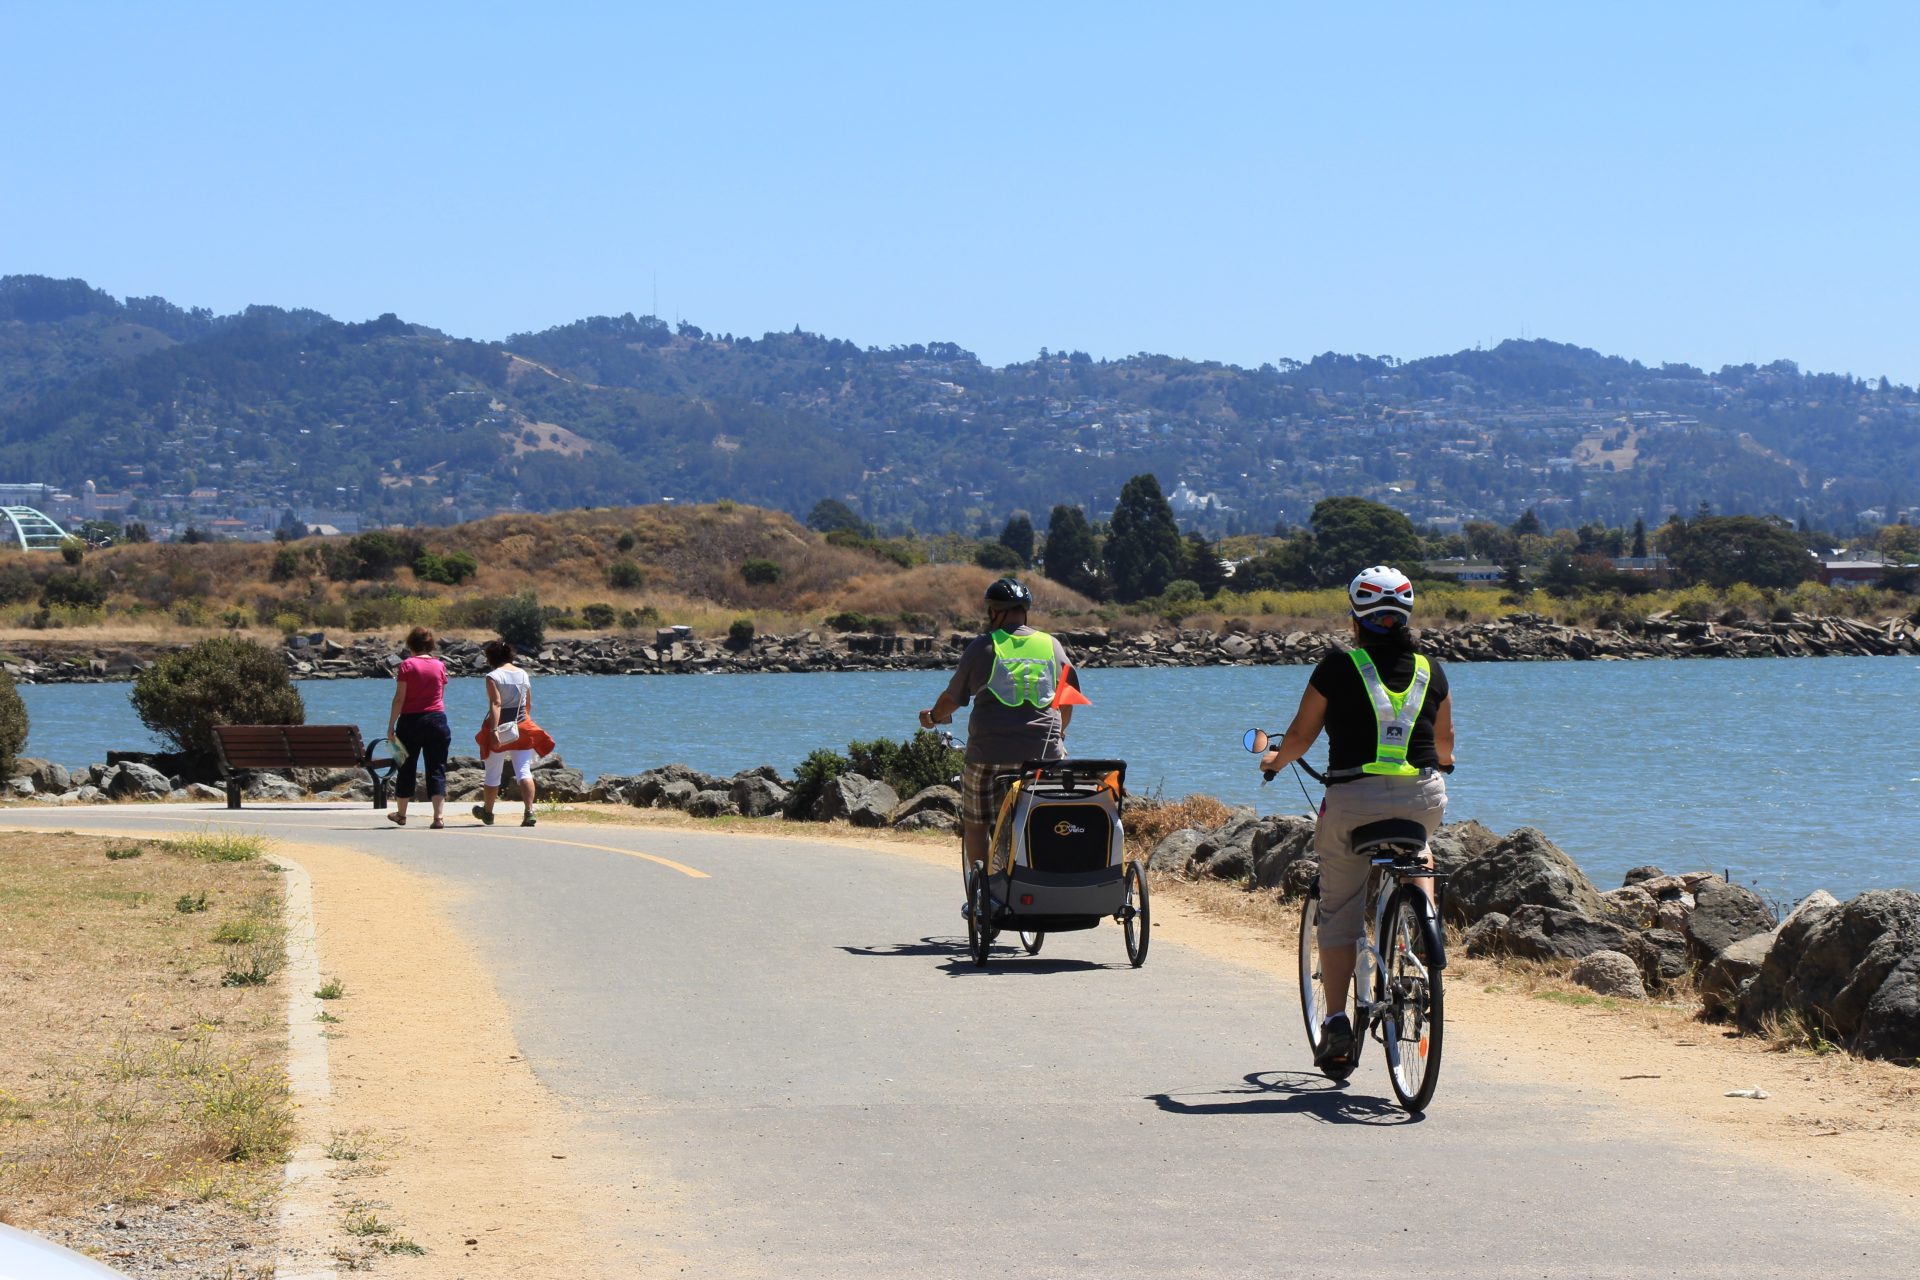 Two bicyclists, one with a child trailer ride on paved path, passing two pedestrians, with bay and hills in distance